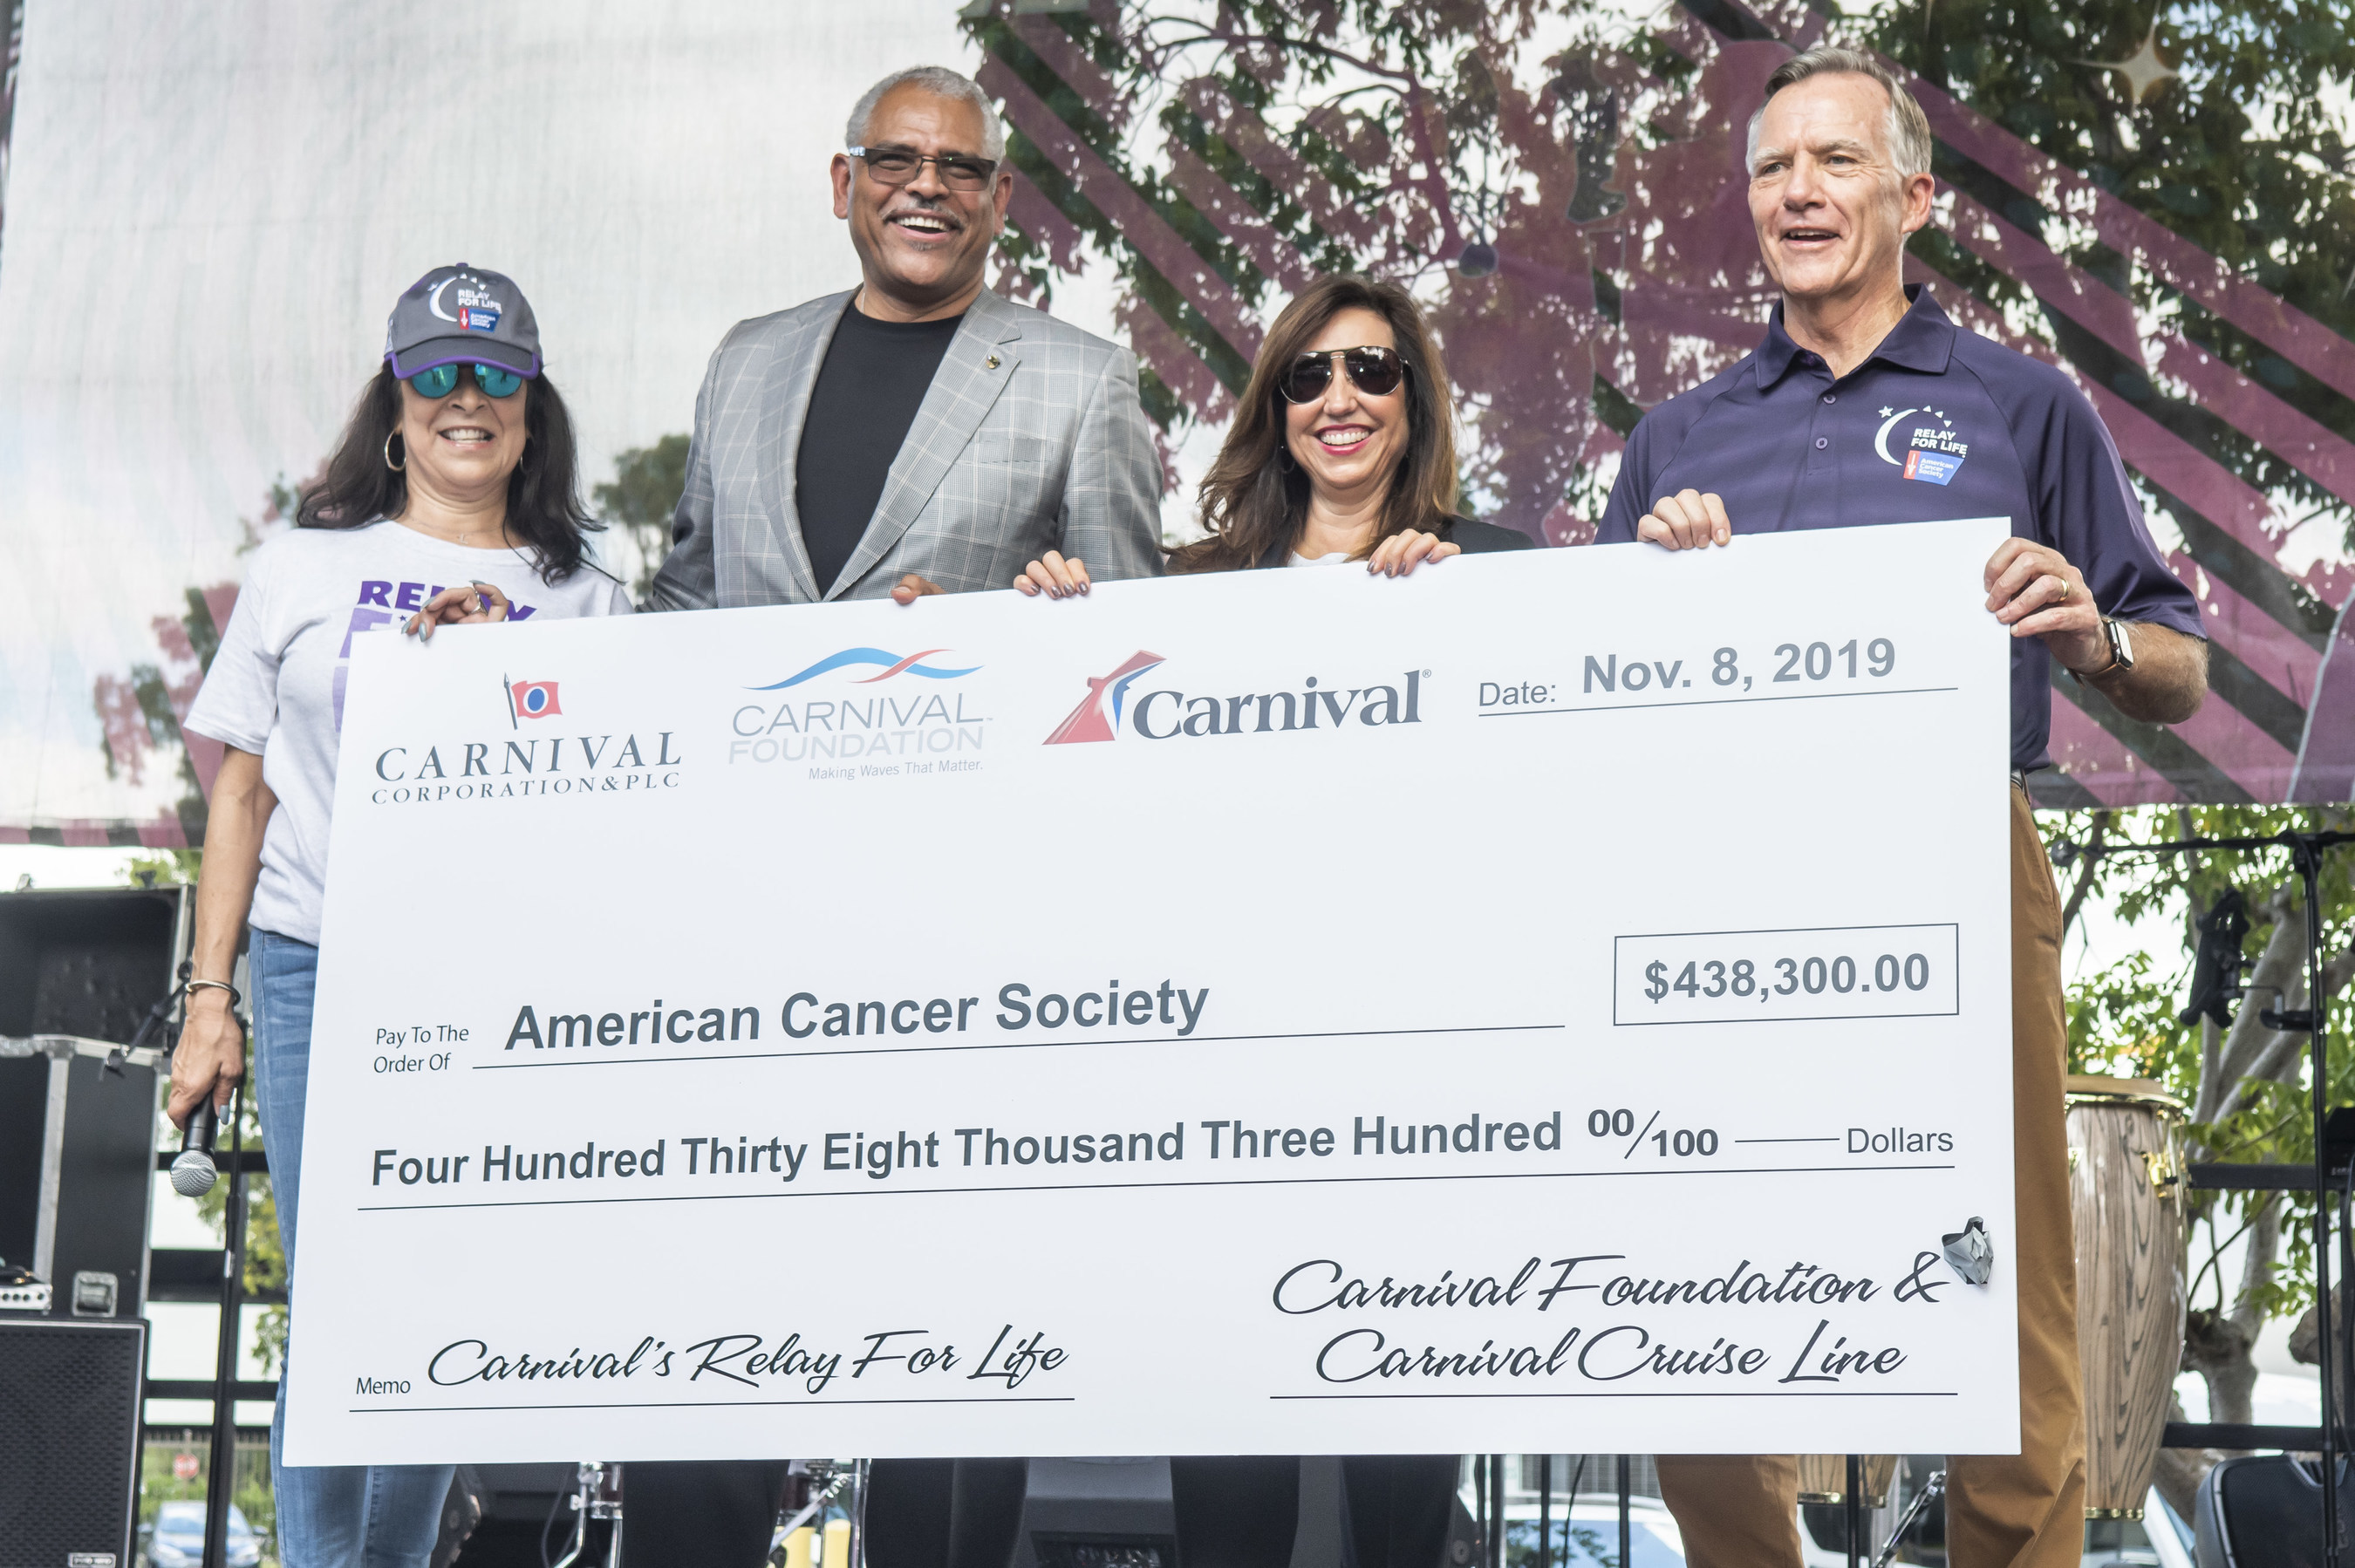 Linda Coll (left), executive director of Carnival Foundation; Arnold Donald, president and CEO of Carnival Corp.; and Christine Duffy, president of Carnival Cruise Line; presented a check for $438,300 raised to date to Gary Reedy (right), CEO of American Cancer Society (CREDIT: Carnival Foundation)